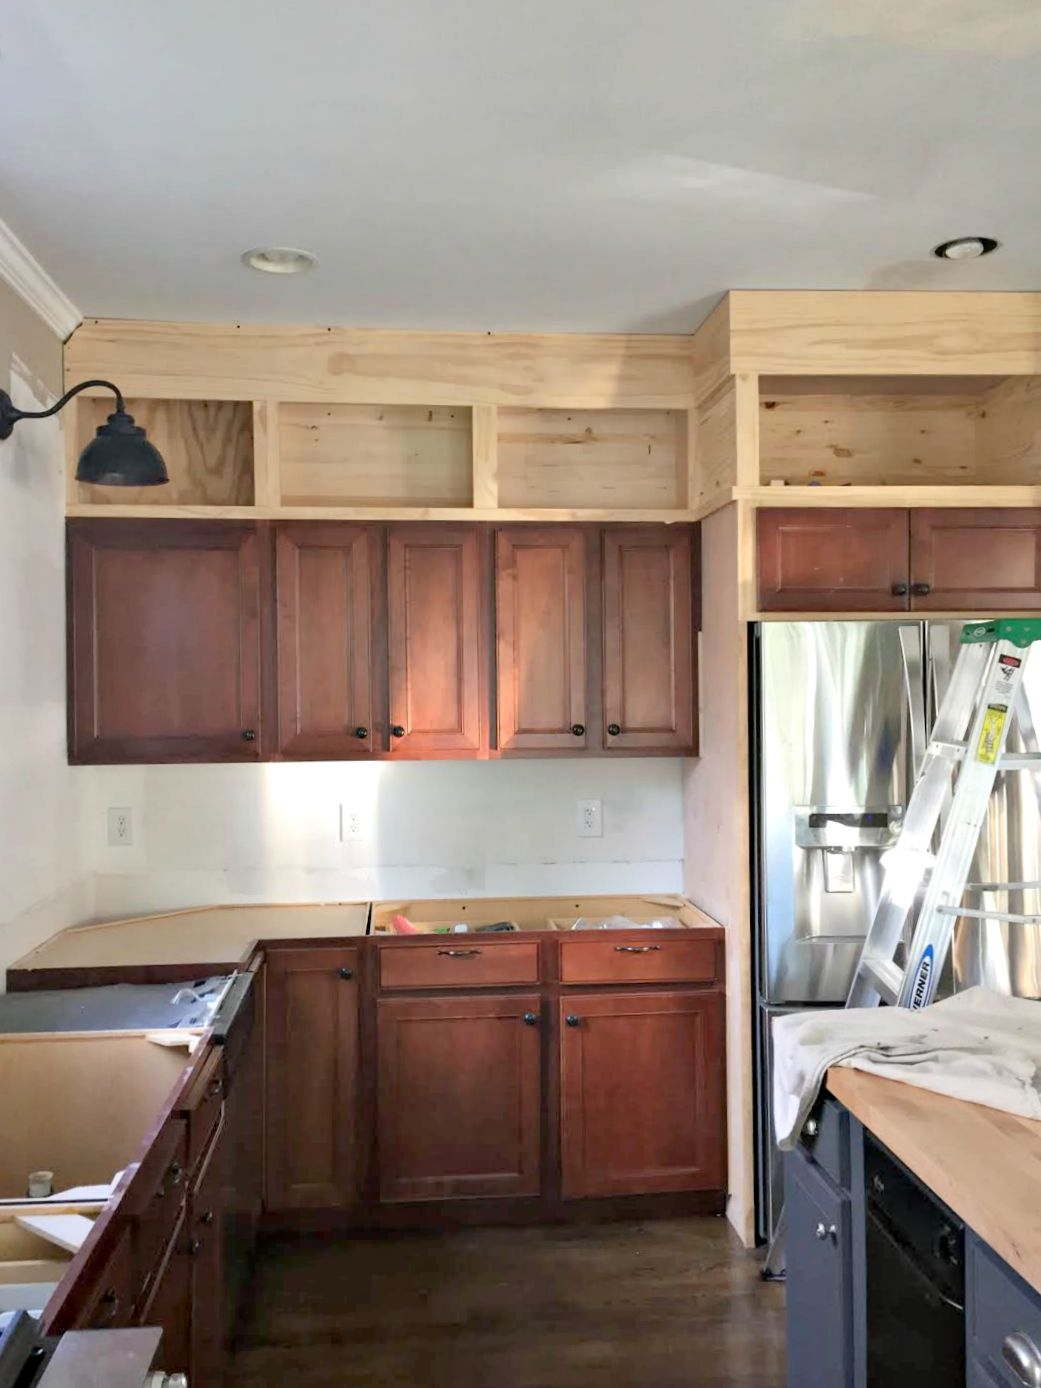 Adding Trim To Existing Kitchen Cabinets